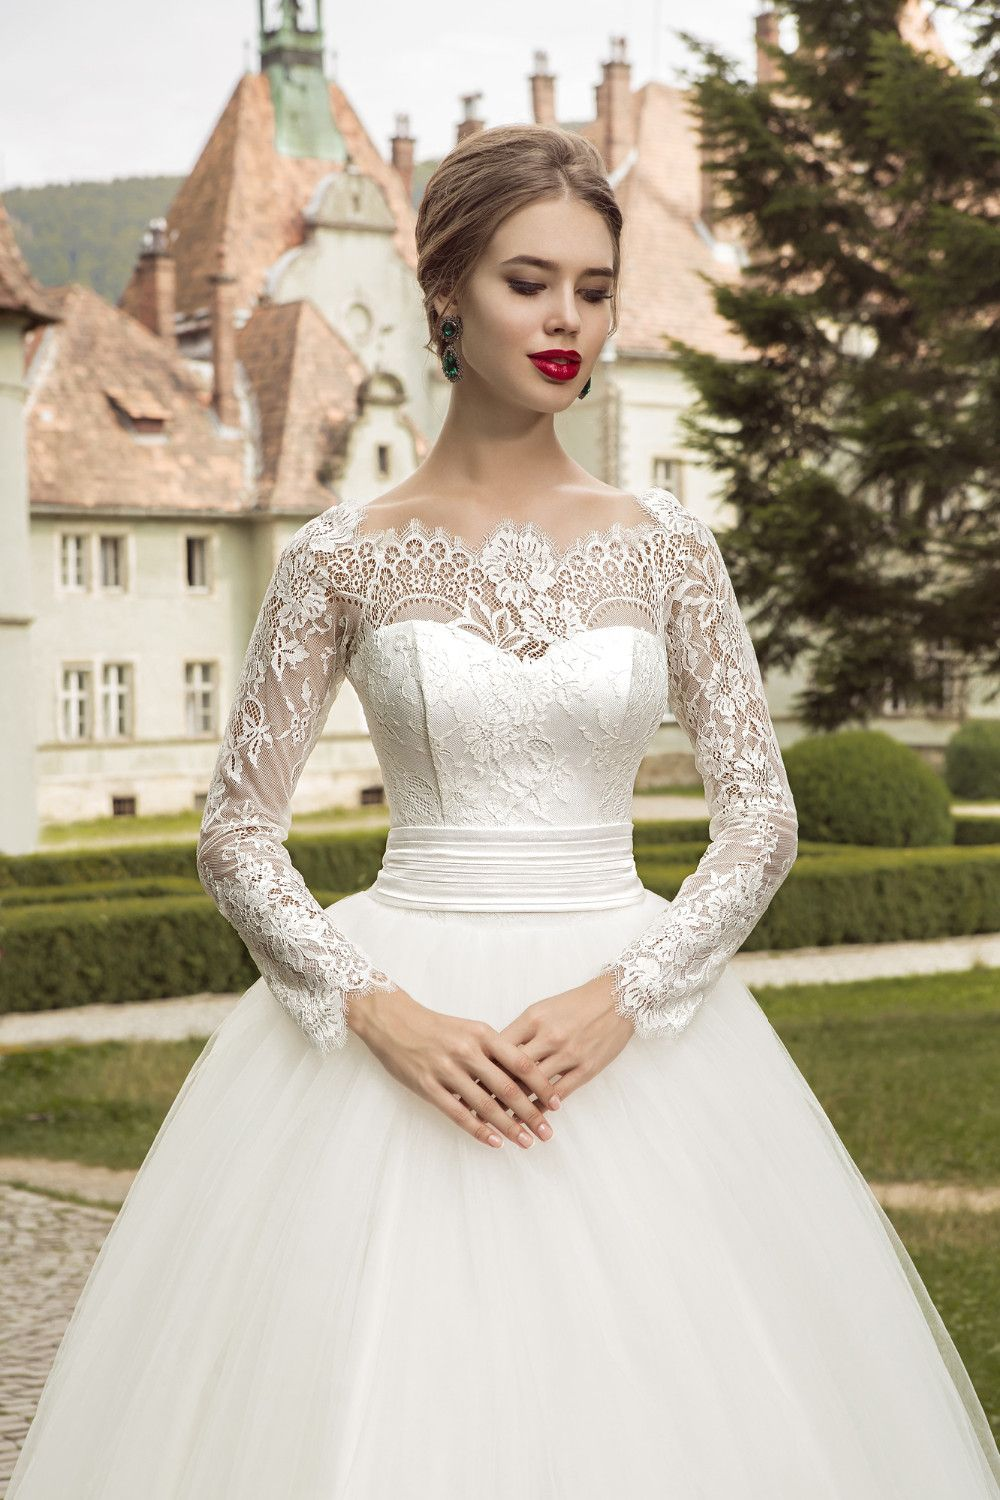 Home My Wedding Ideas Long Sleeve Ball Gown Wedding Dress Bridal Gown Tulle Sweetheart Wedding Gown [ 1500 x 1000 Pixel ]